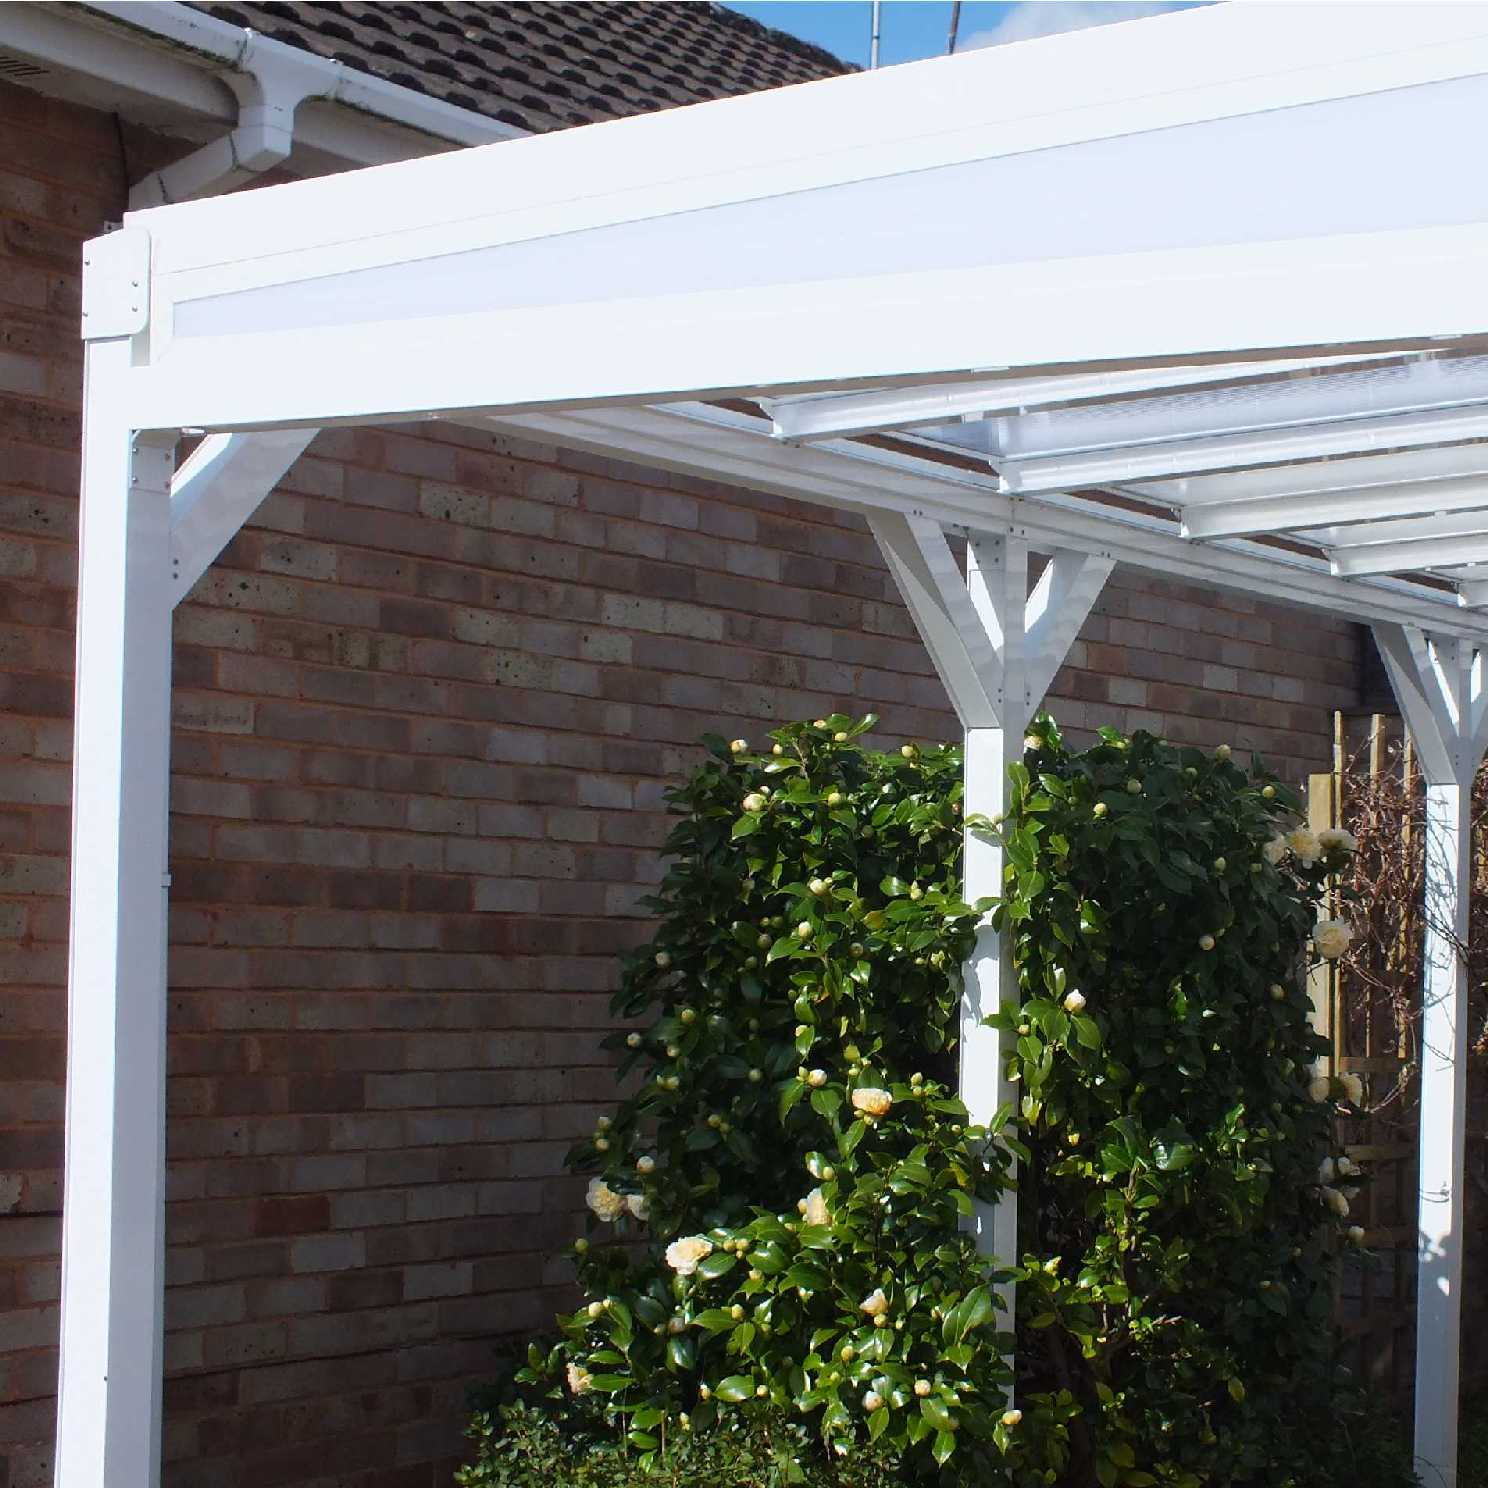 Omega Smart Lean-To Canopy with 16mm Polycarbonate Glazing - 4.2m (W) x 3.0m (P), (3) Supporting Posts from Omega Build